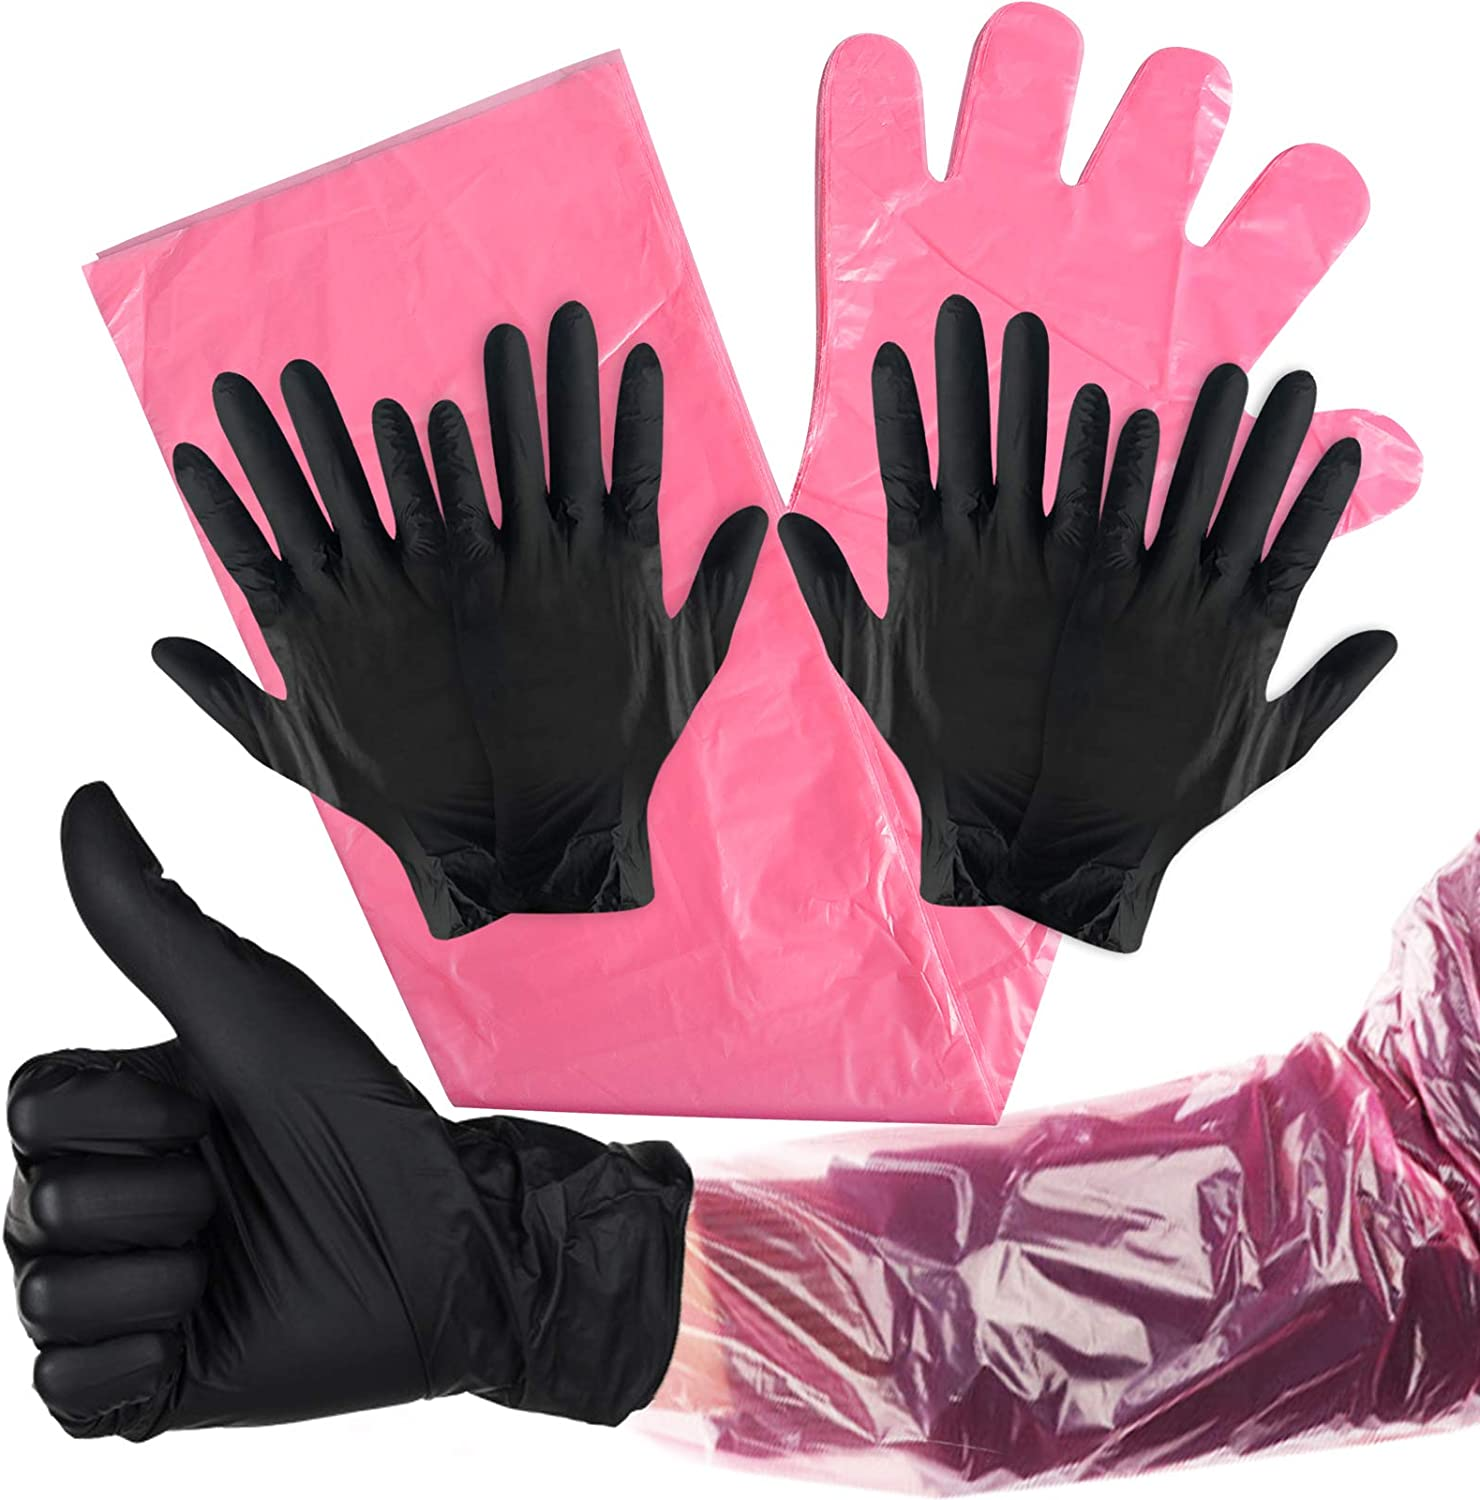 Challenge the lowest price of Japan Kalolary Disposable Gloves Hunting Long Dress Field Very popular Short